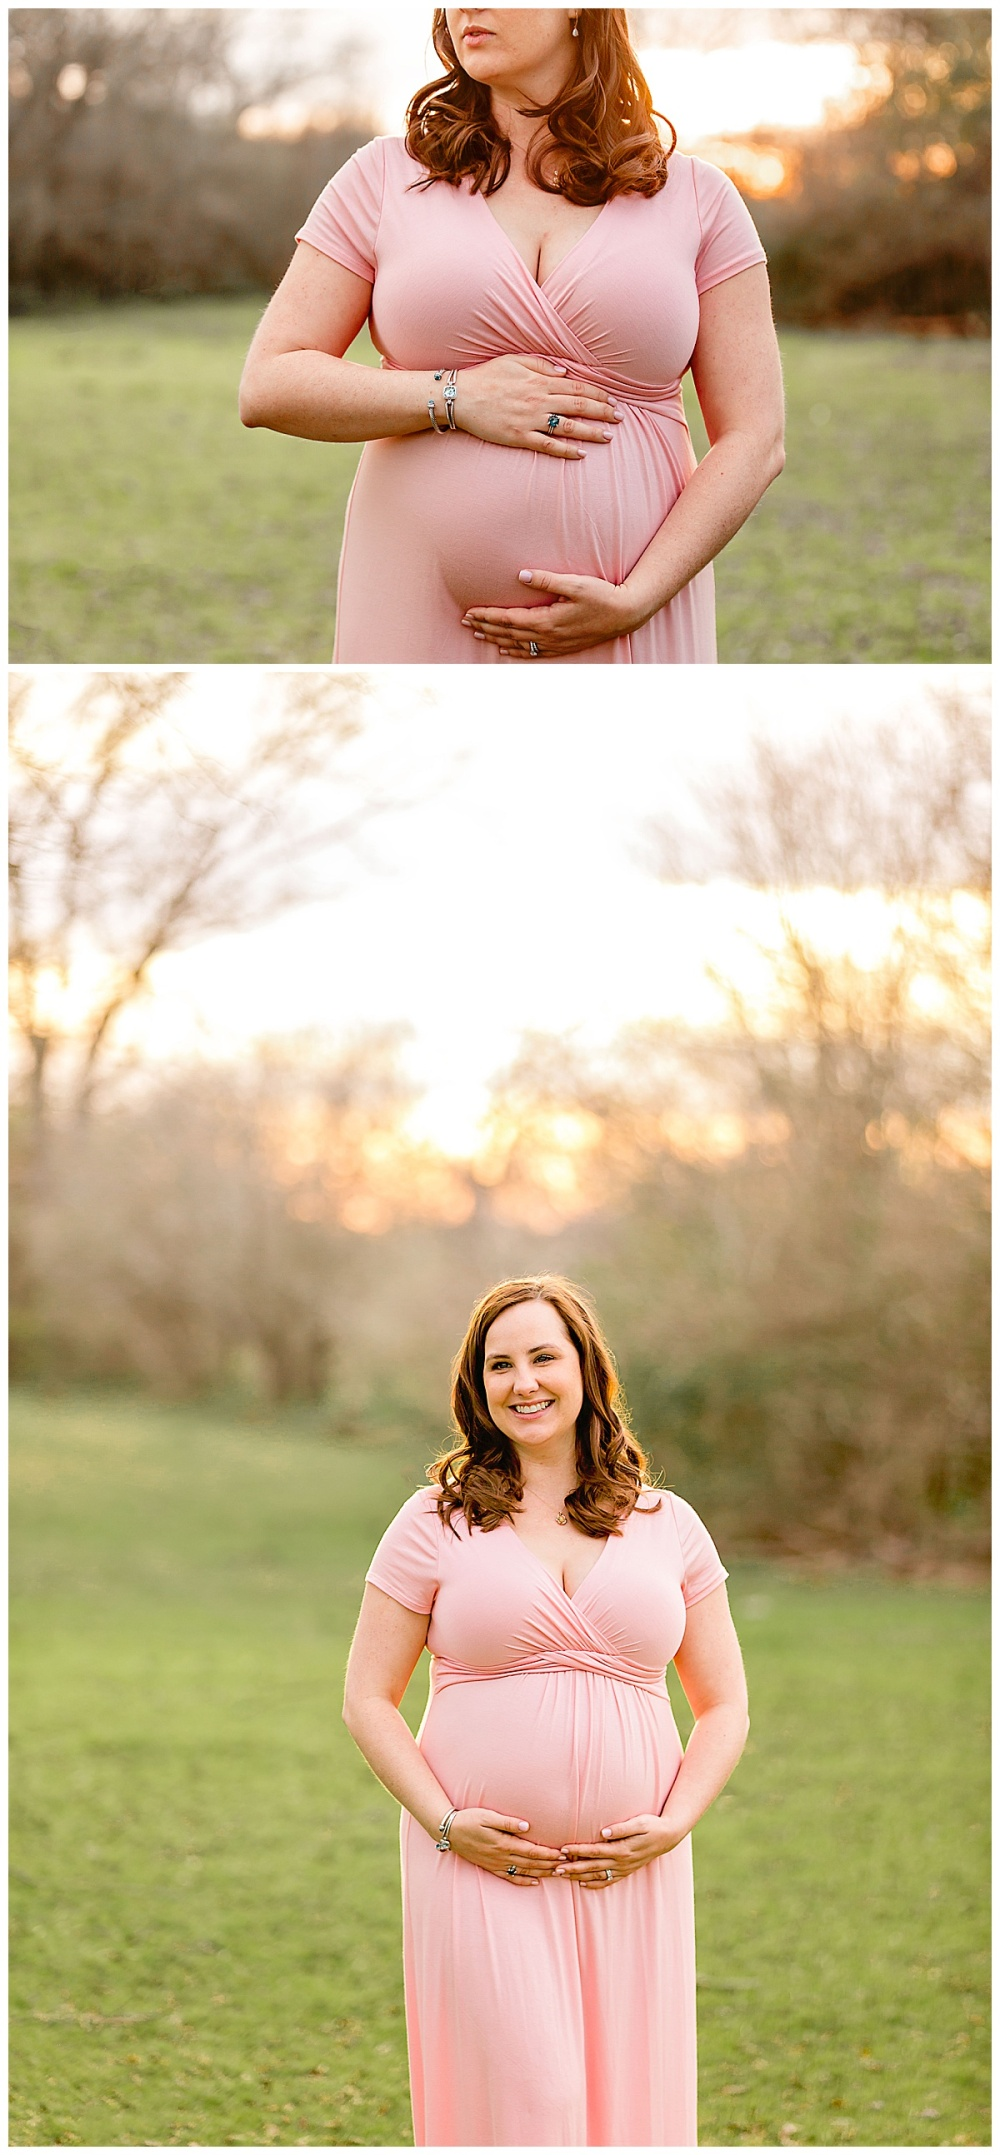 Maternity-Photographer-Texas-Carly-Barton-Photography-LaVernia-Photos_0006.jpg